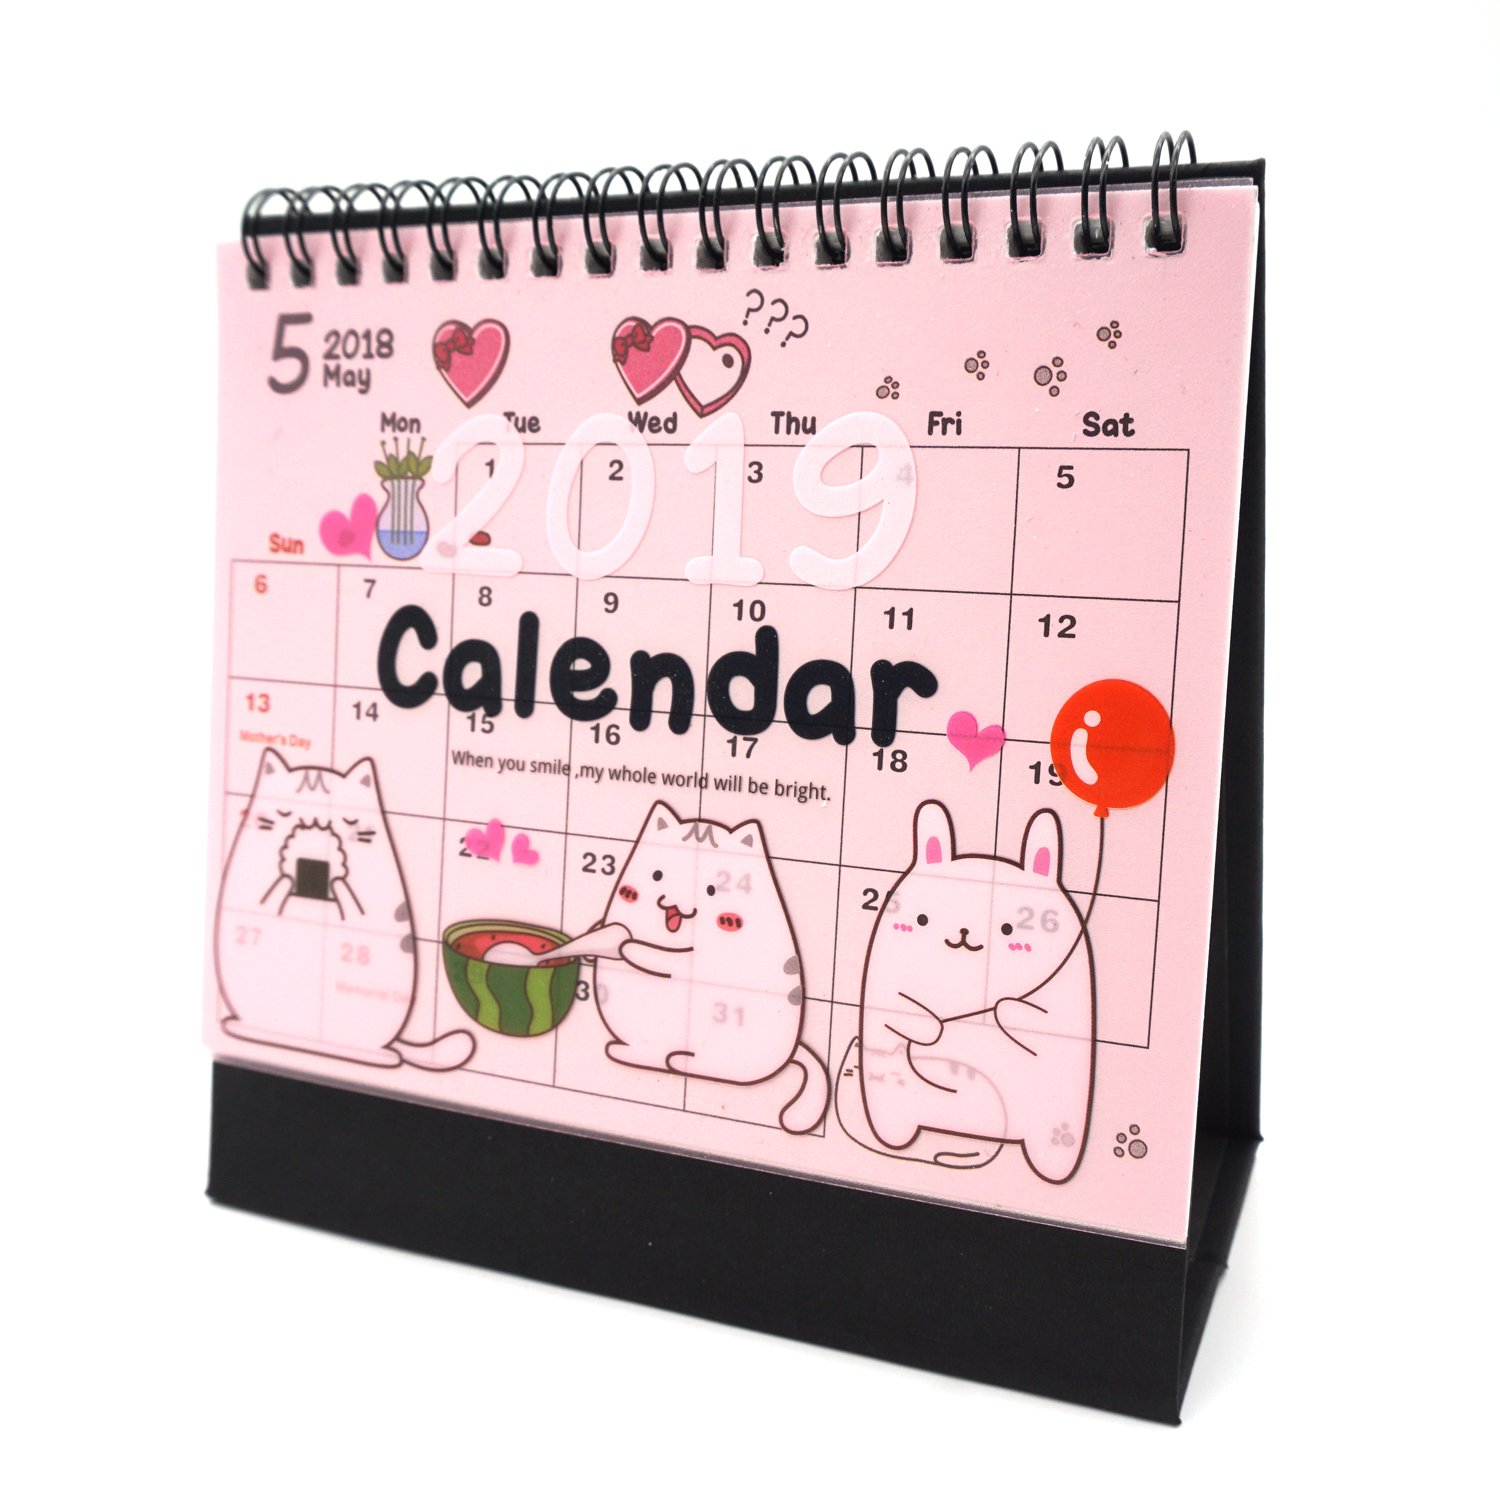 Desk Calendar 2019 2020 Academic Planner Daily Weekly Monthly Yearly Organizer and Goal Journal, Designed to Set Goals and Get Things Done (Cat)